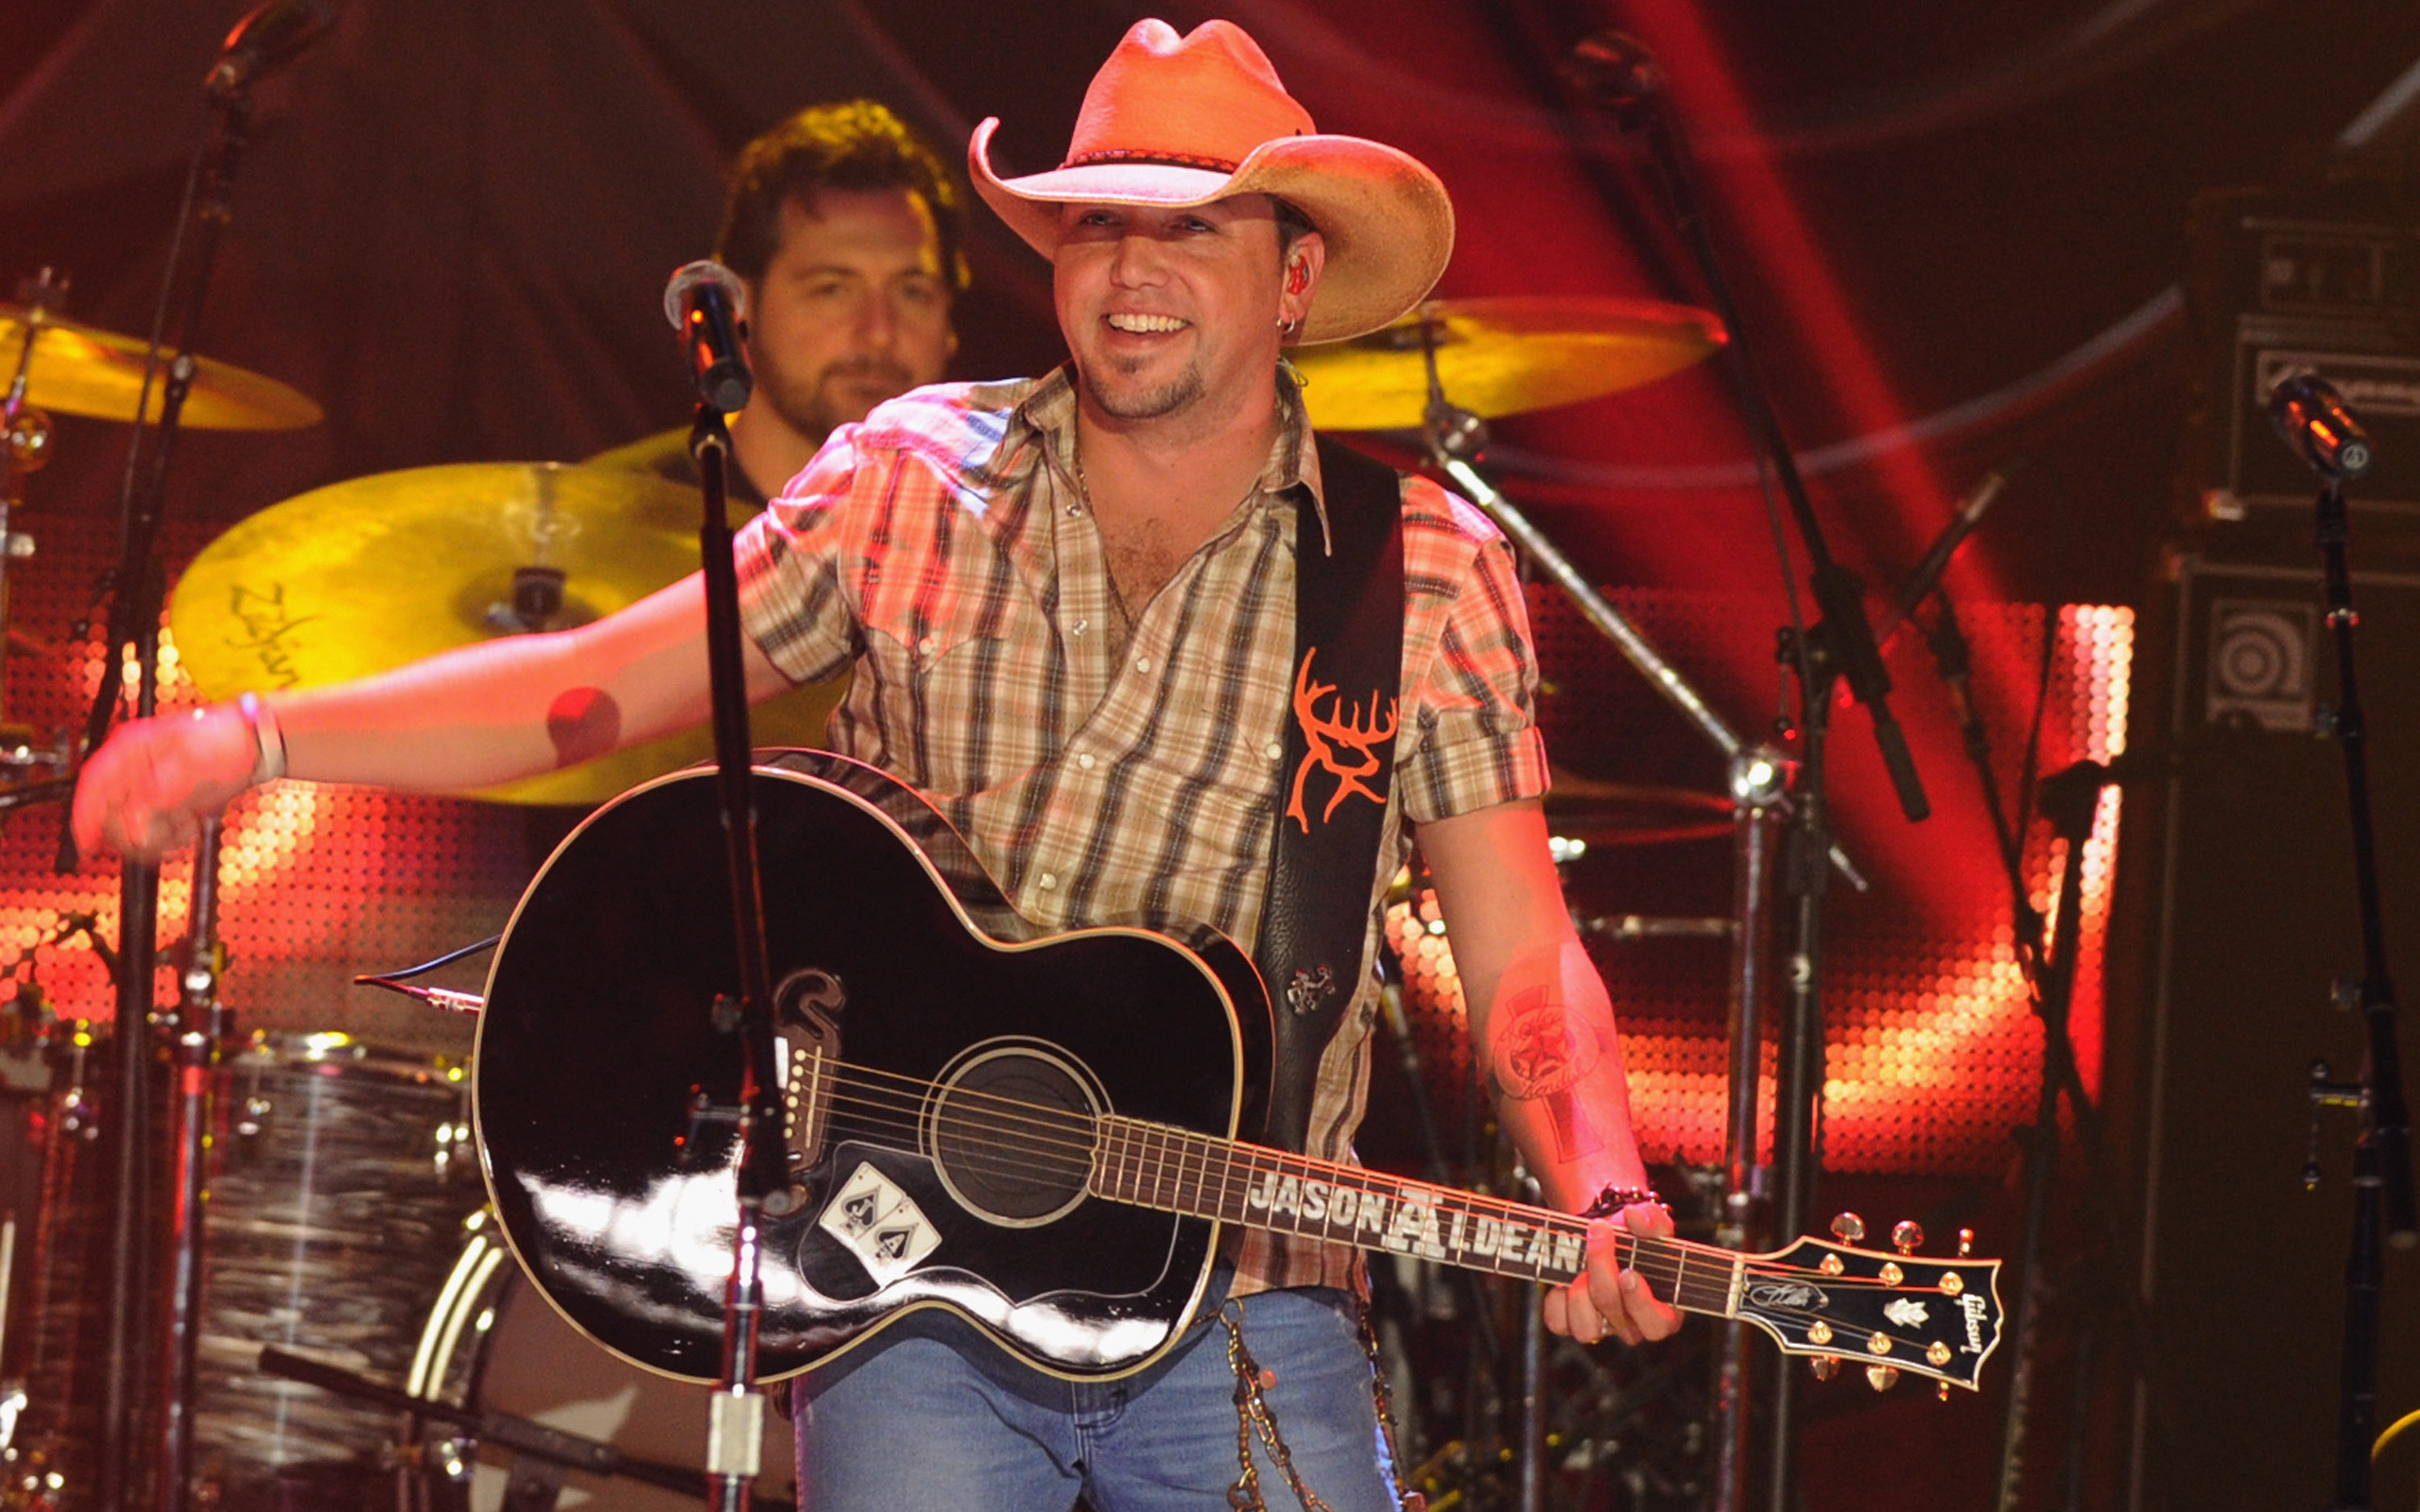 American Singer, Country, Music, Jason Aldean, Jason Aldean Singer, Country  Rock